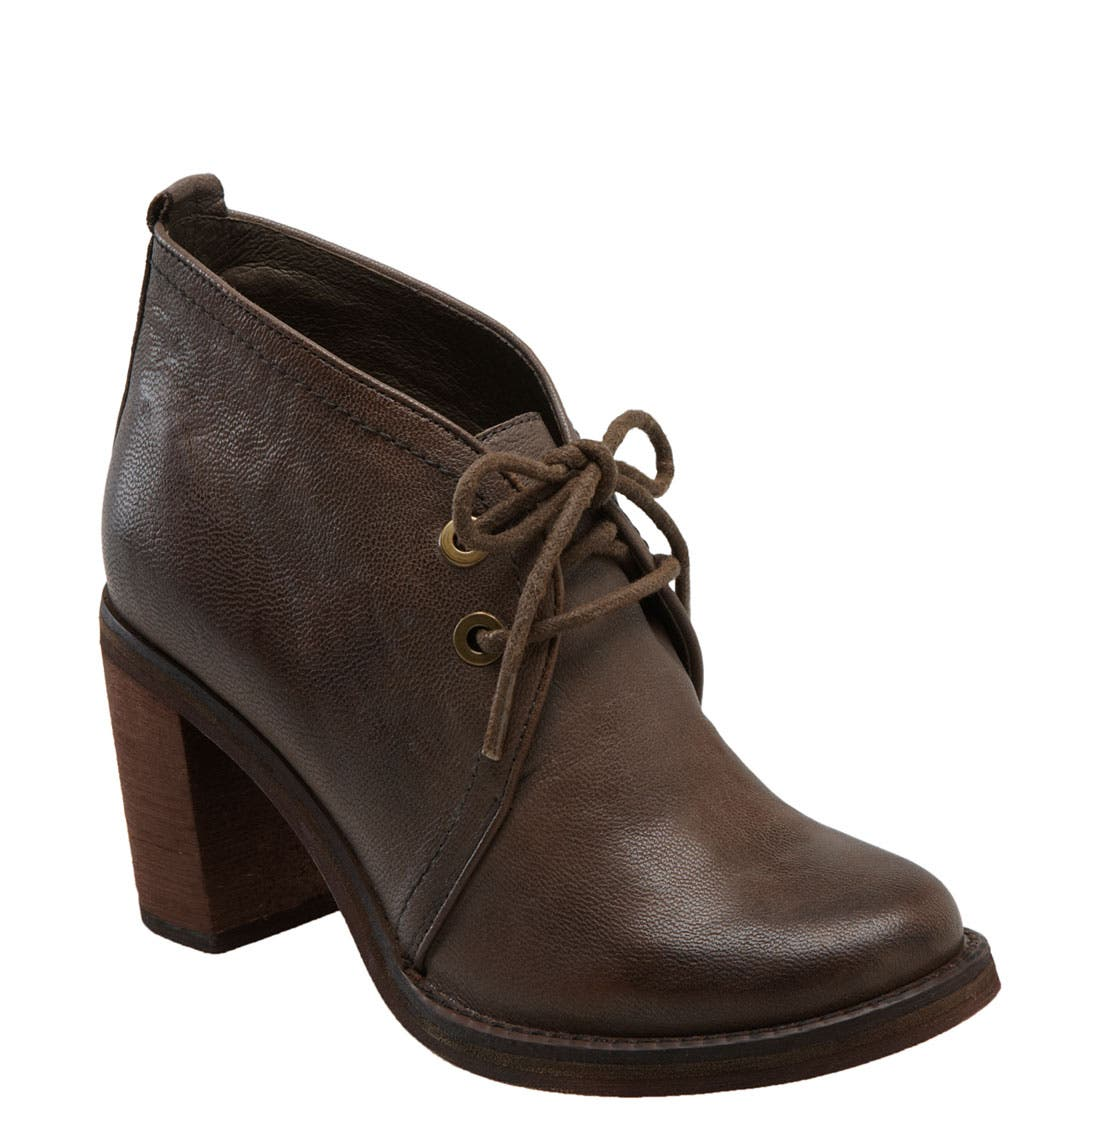 Alternate Image 1 Selected - Jeffrey Campbell 'Boxxy' Bootie